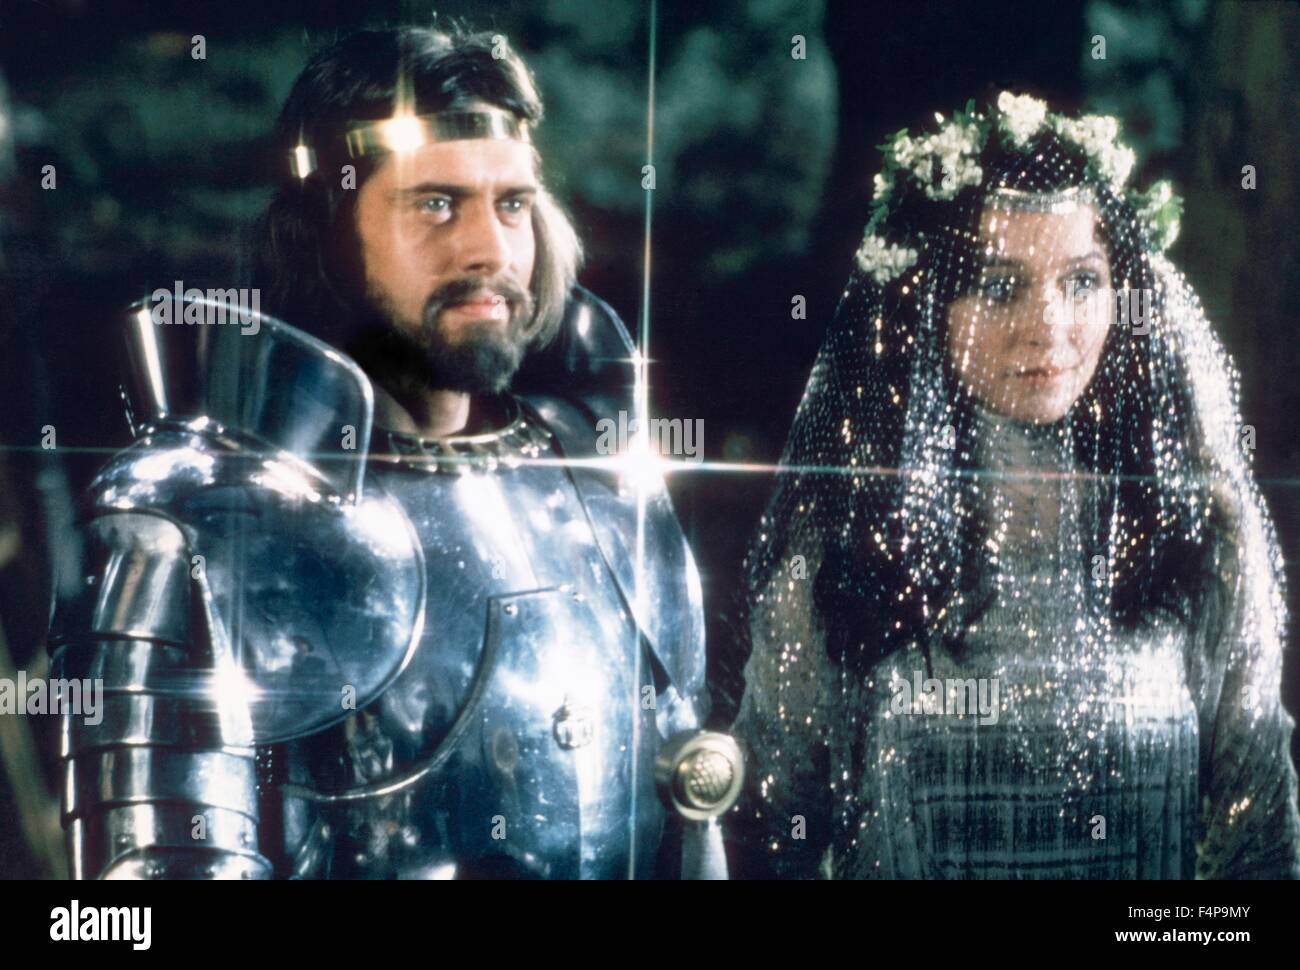 Nigel Terry, Cherie Lunghi / Excalibur 1981 directed by John Boorman - Stock Image